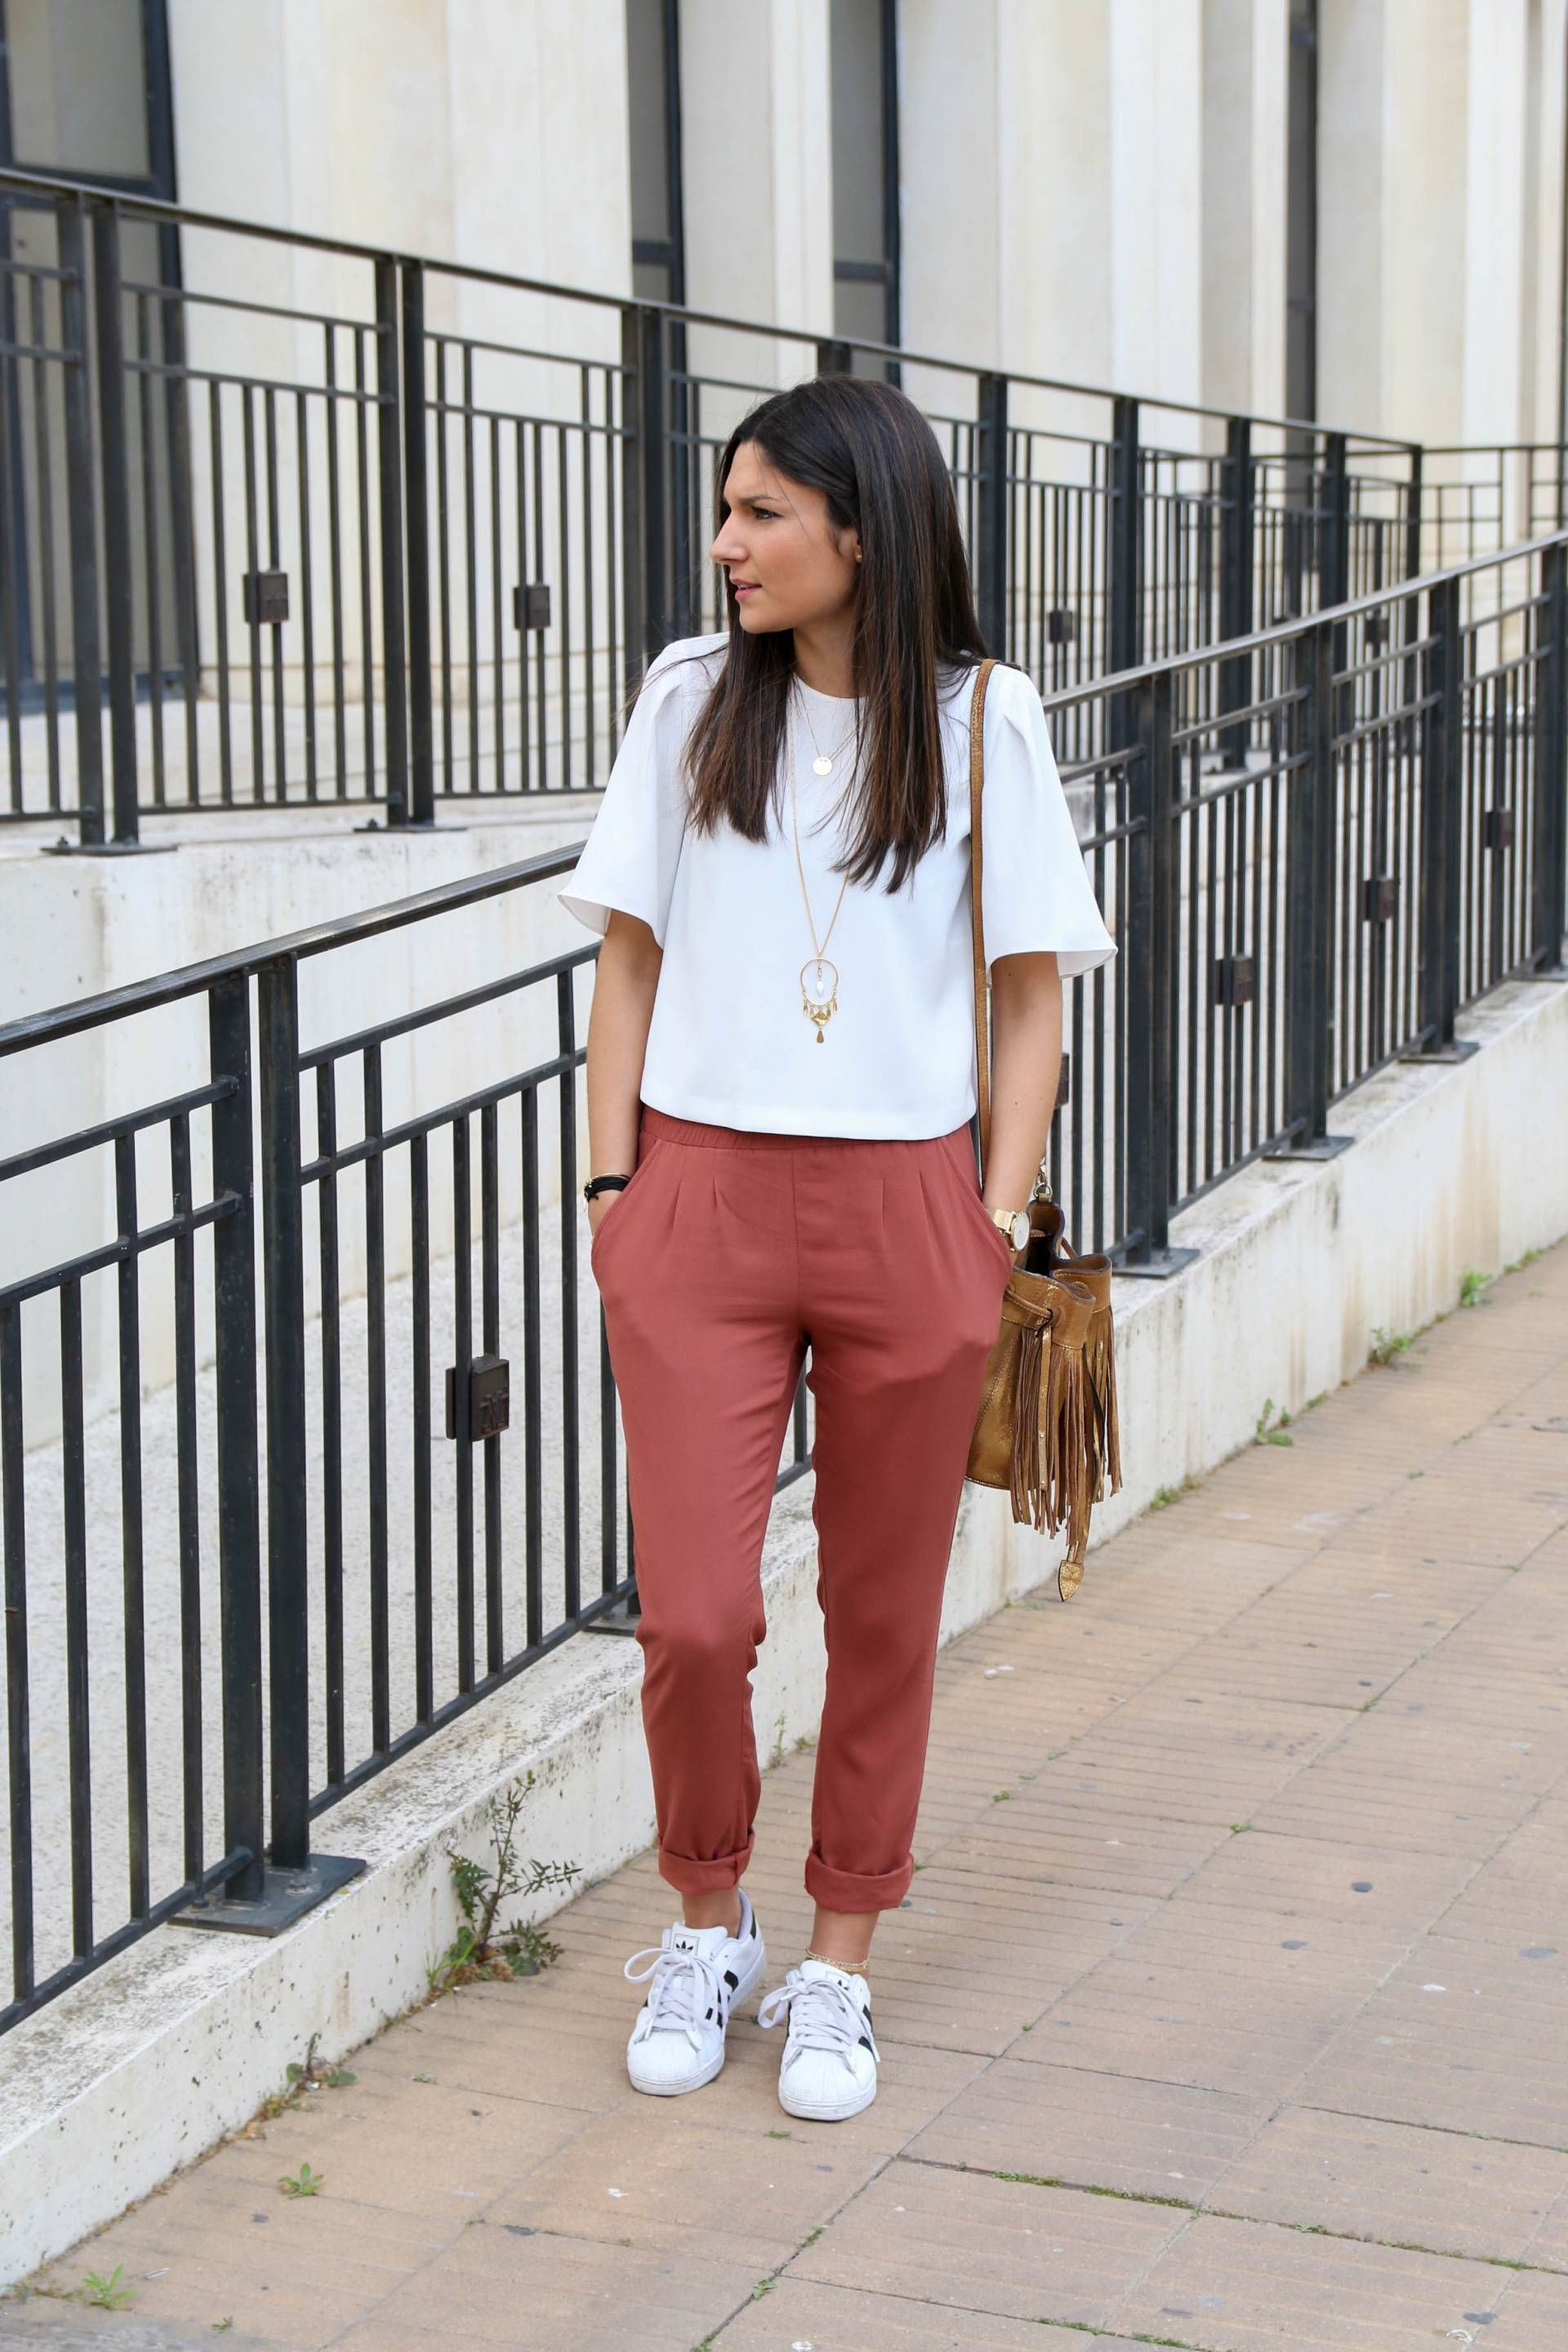 Blog mode tenue chic decontract e s t y l e pinterest tenues chics casual et tenues - Tenue chic et decontractee ...